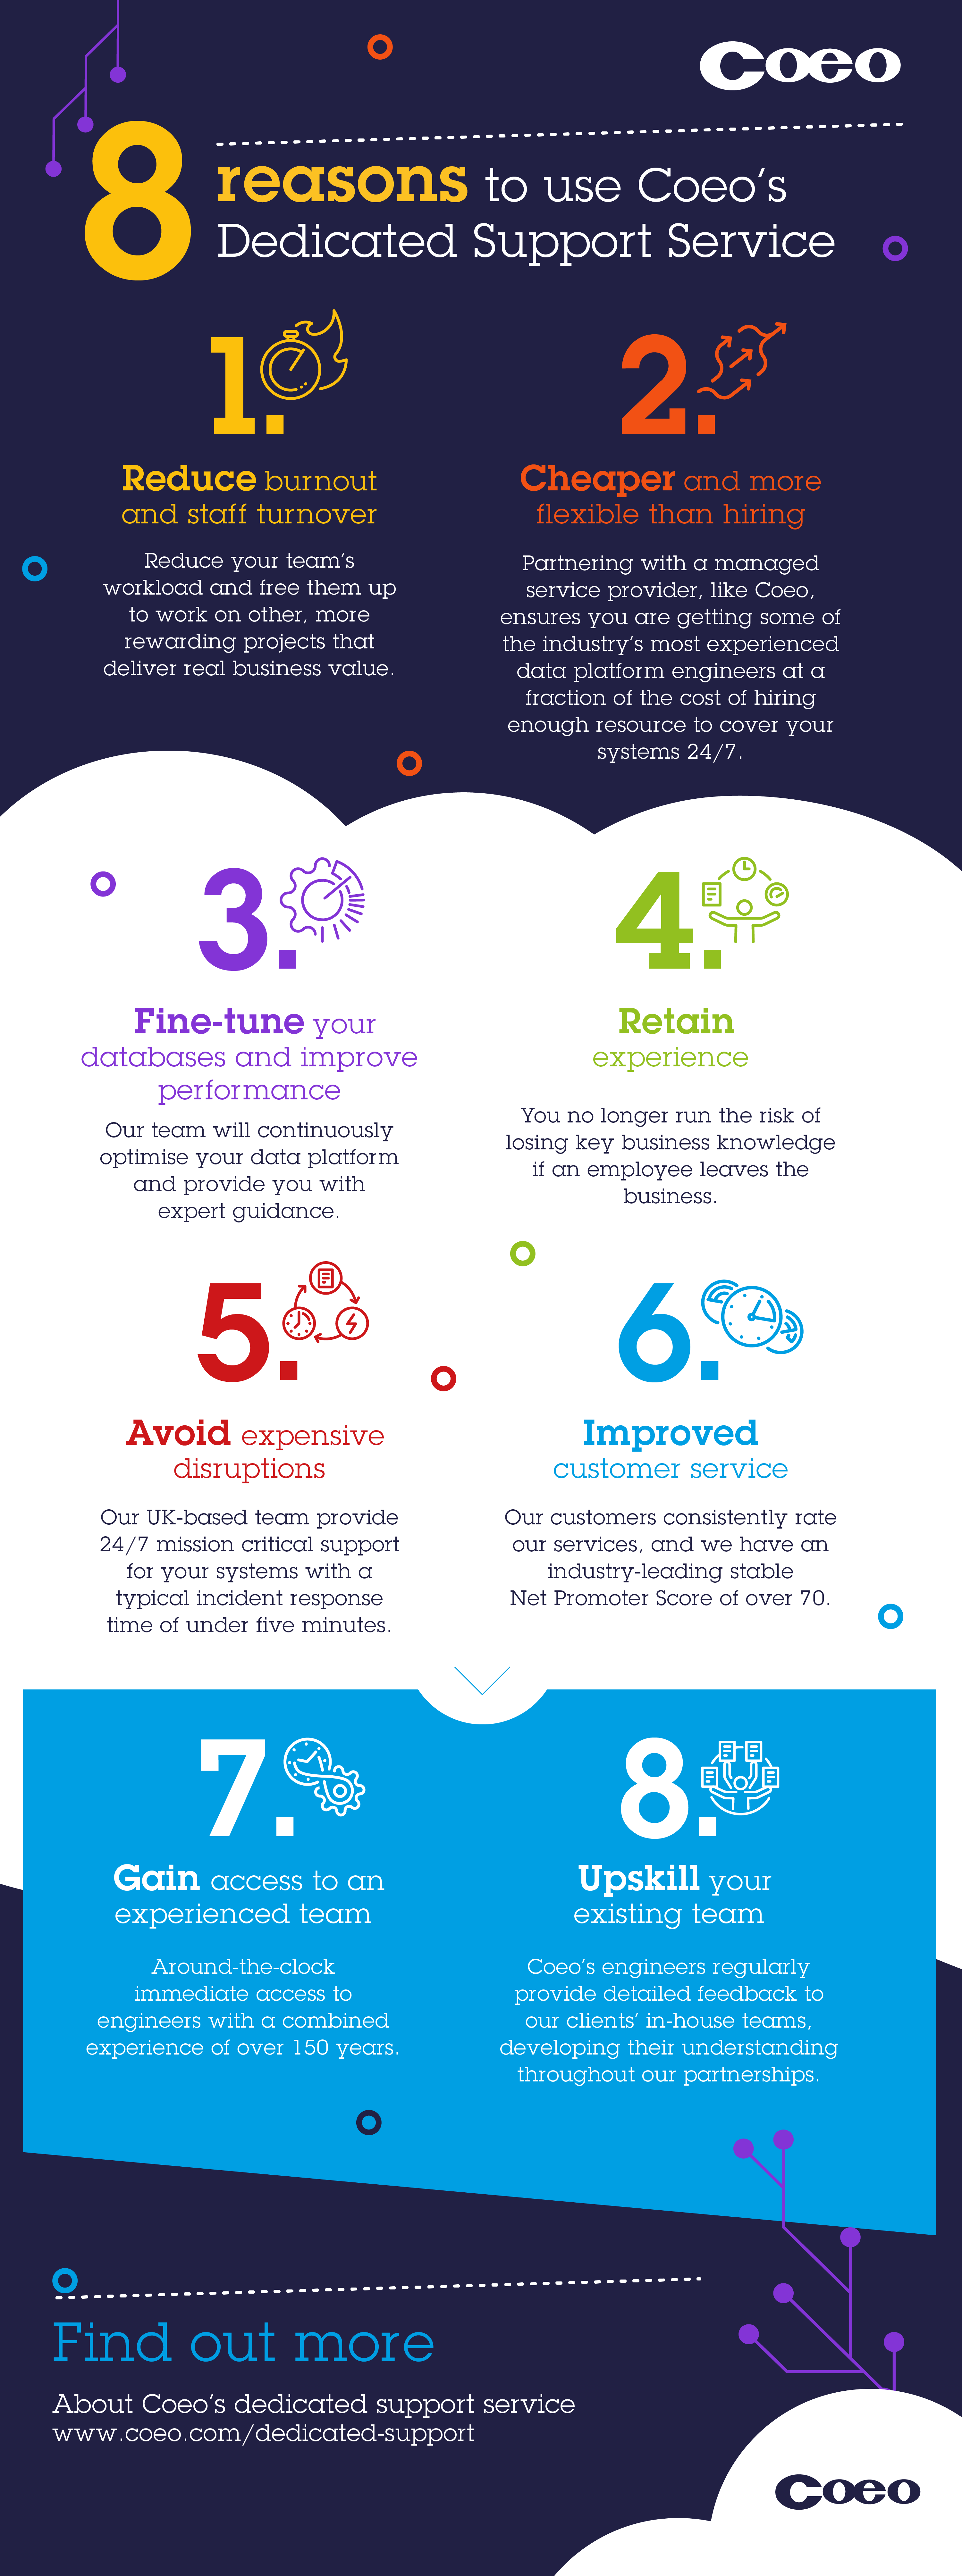 Coeo 8 reasons to use CoeoΓÇÖs Dedicated Support Service